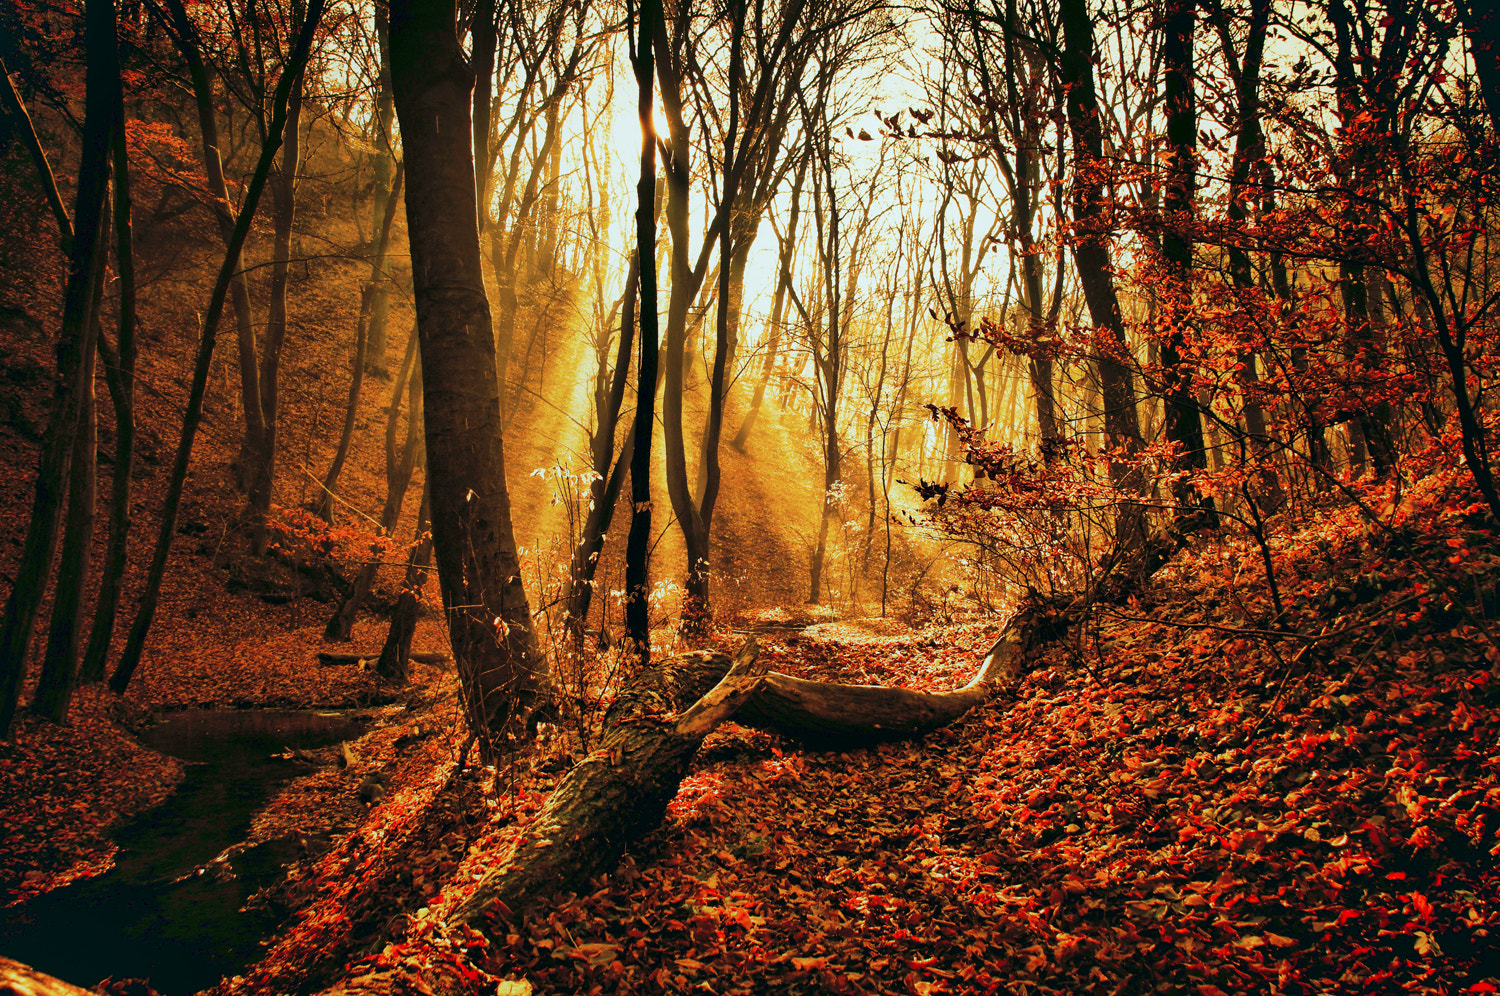 Photograph On the path by Andy 58 on 500px